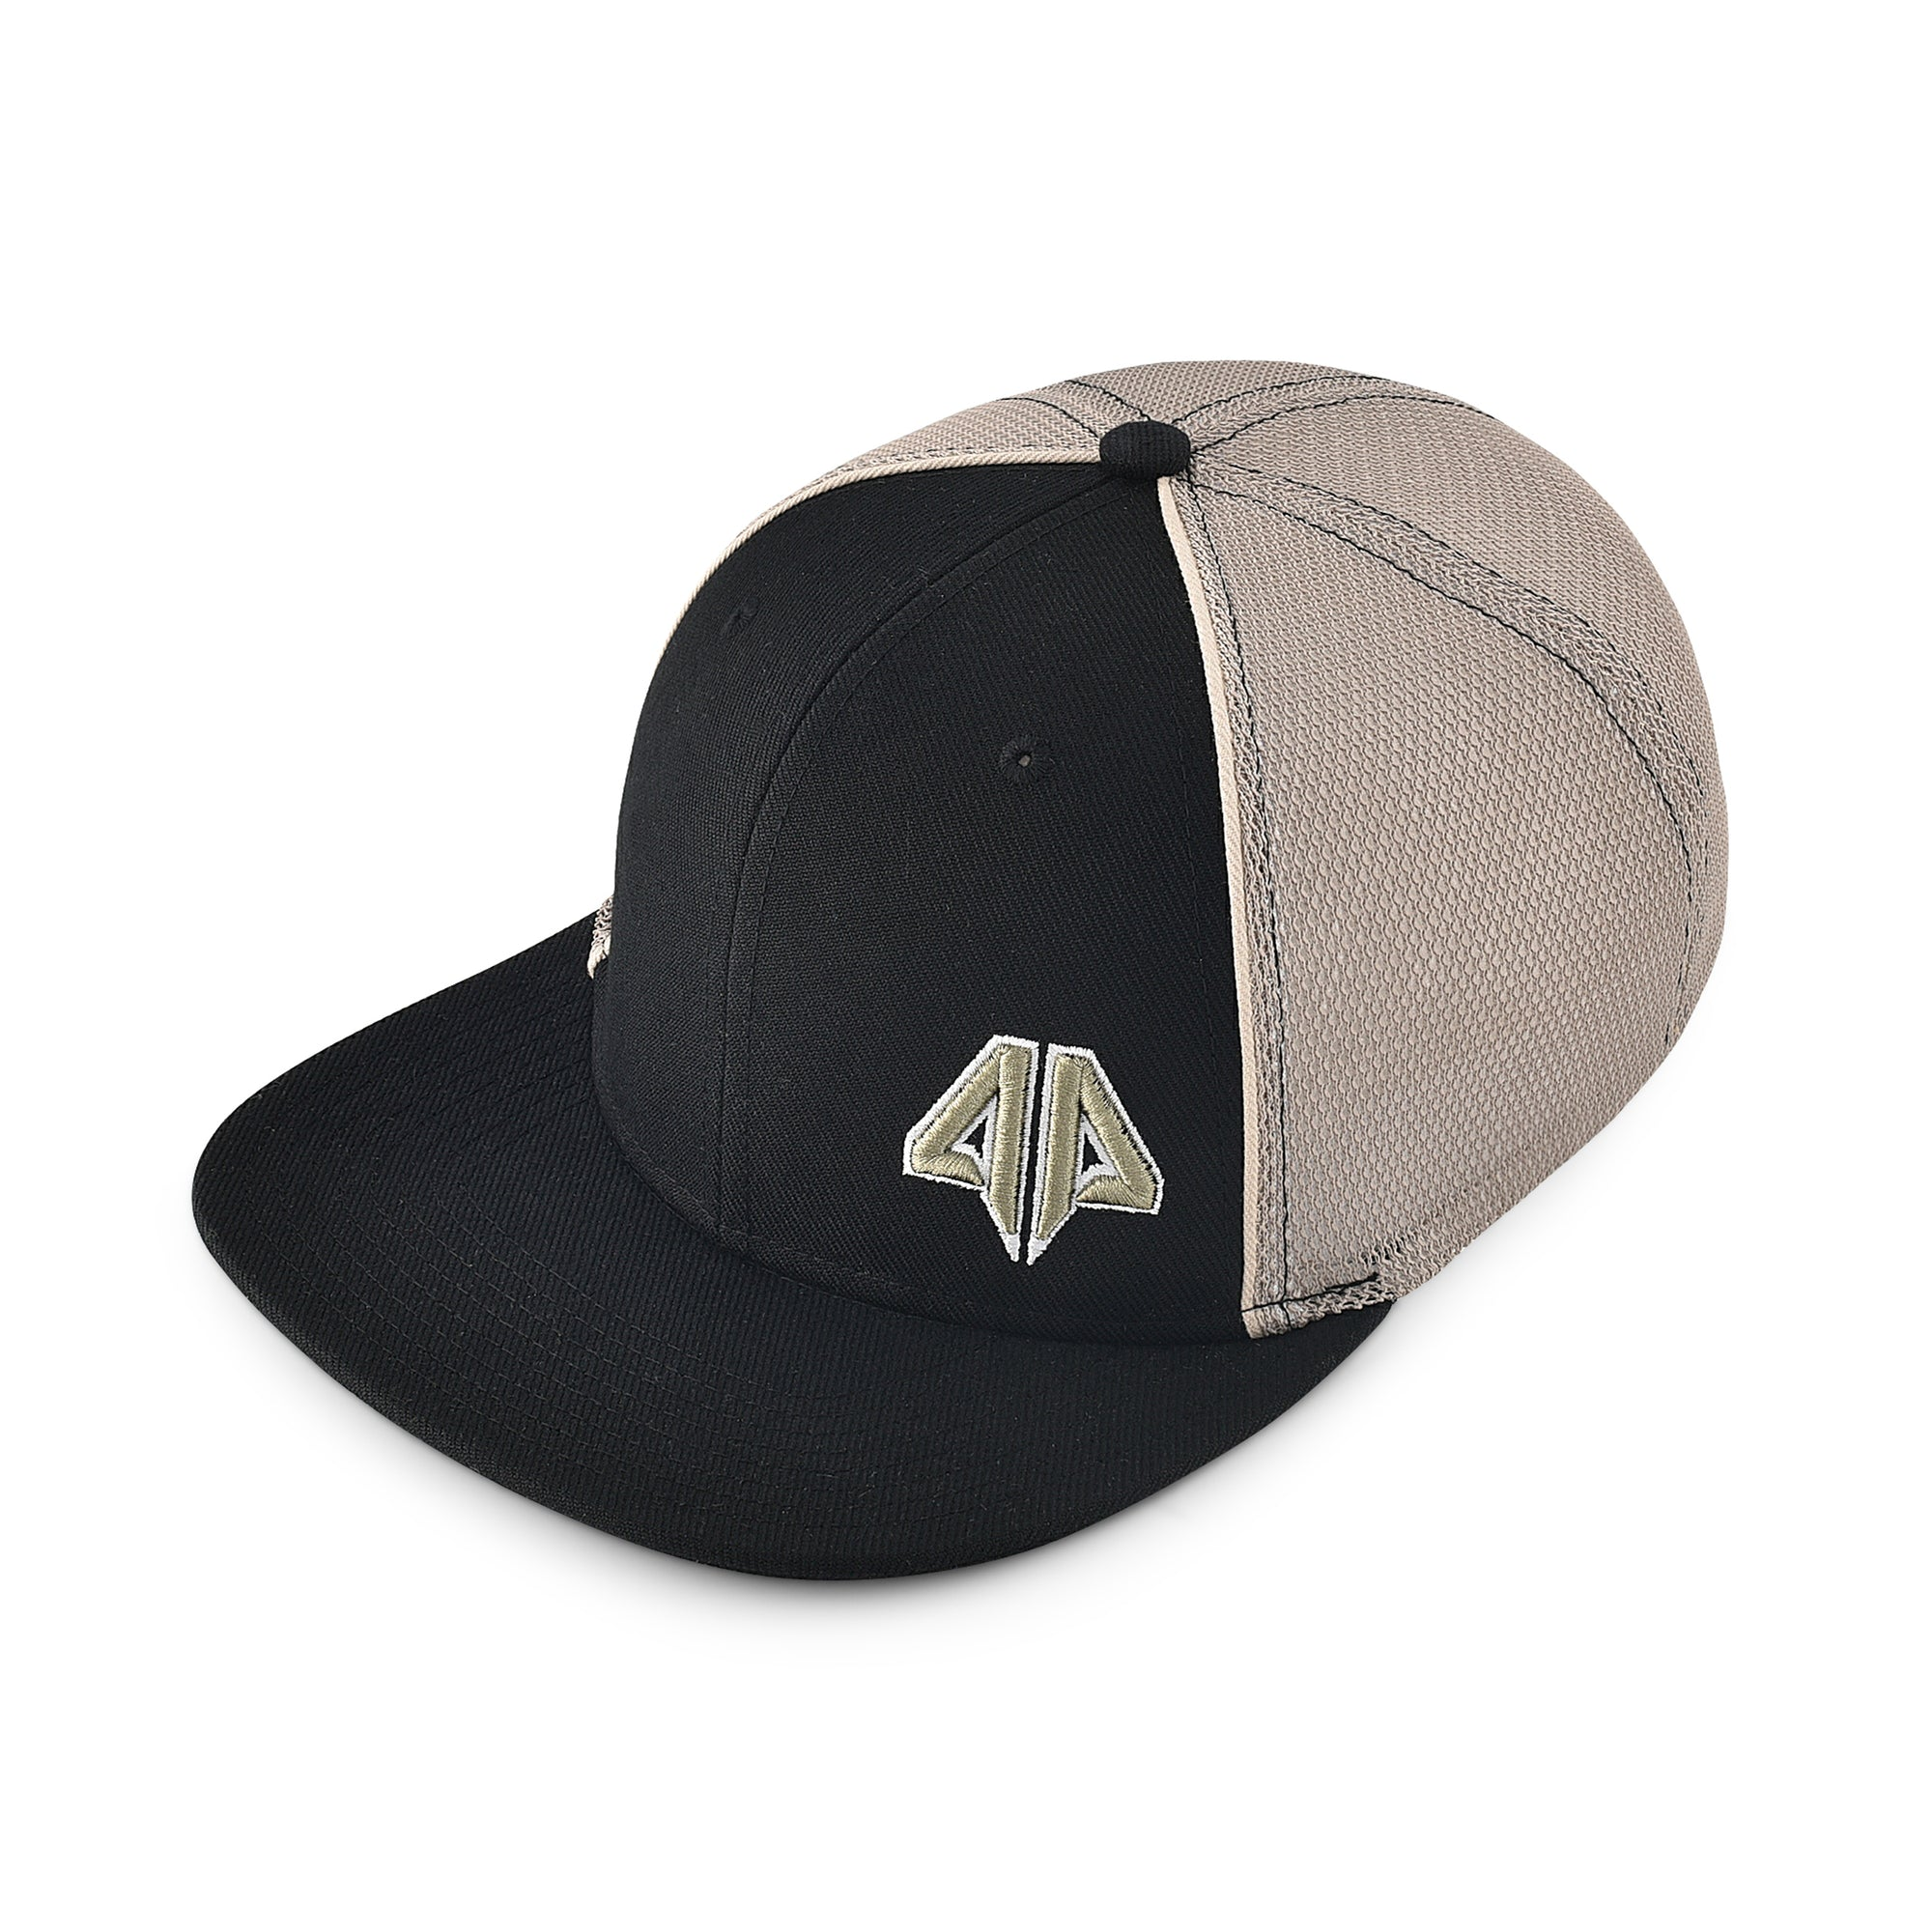 Alpha Prime Fitted Hat - 101FM-Black Gold - Alpha Prime Sports 429adc429a2